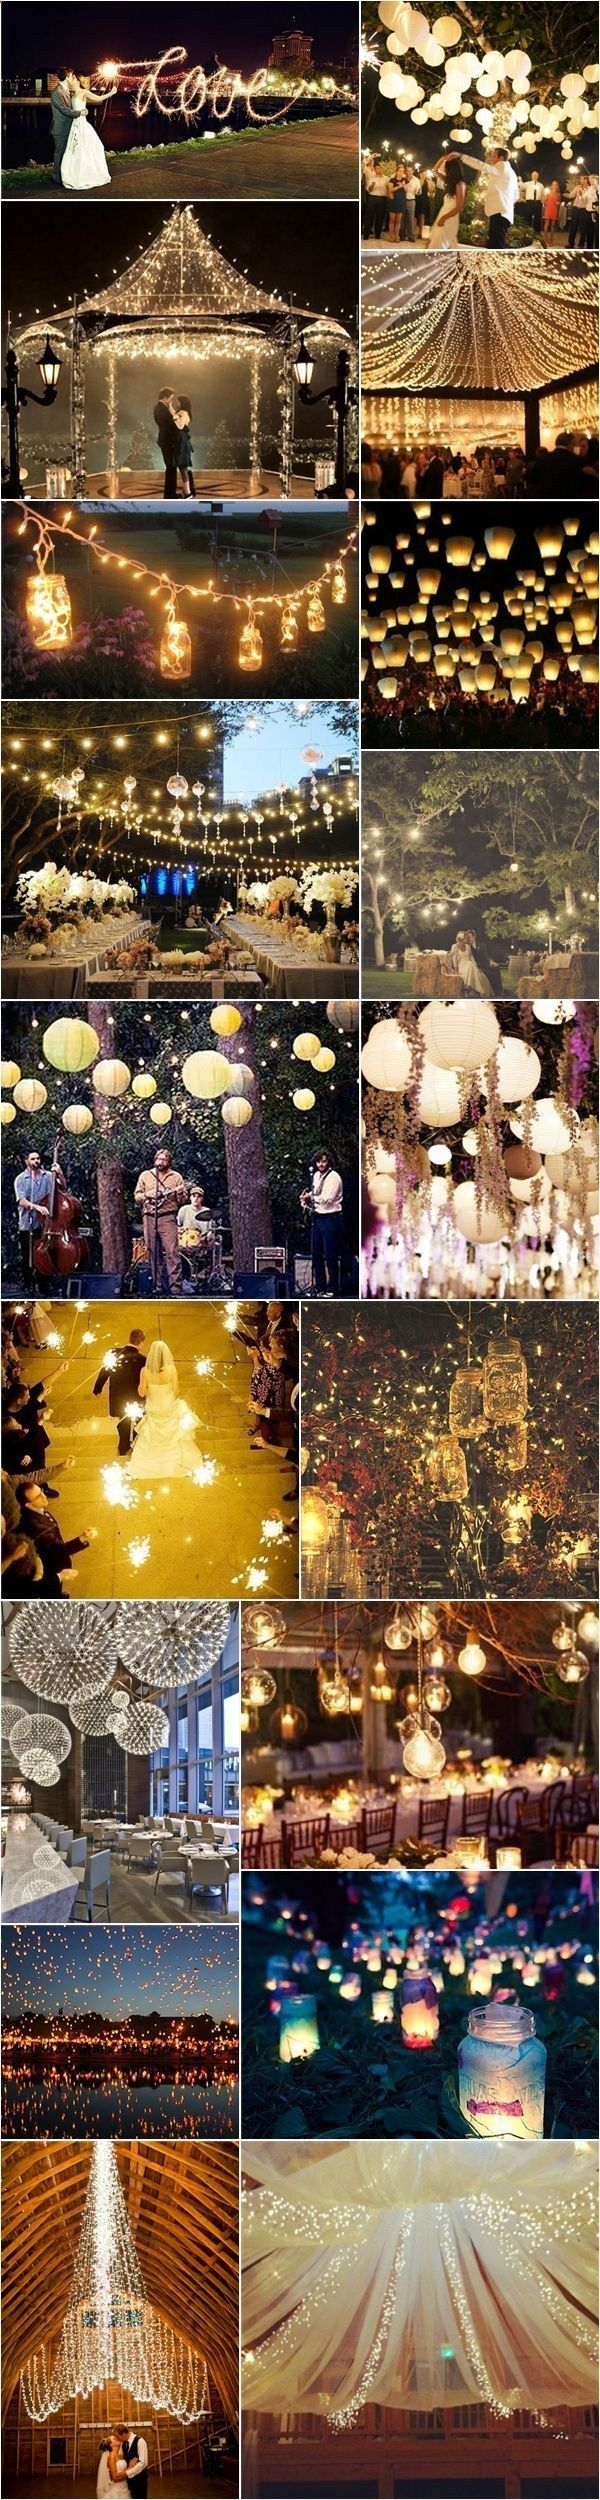 25 Unique Wedding Light Ideas:: Vintage Wedding Ignore the fact that one of these is from the Twilight movie... - fashion-style.co